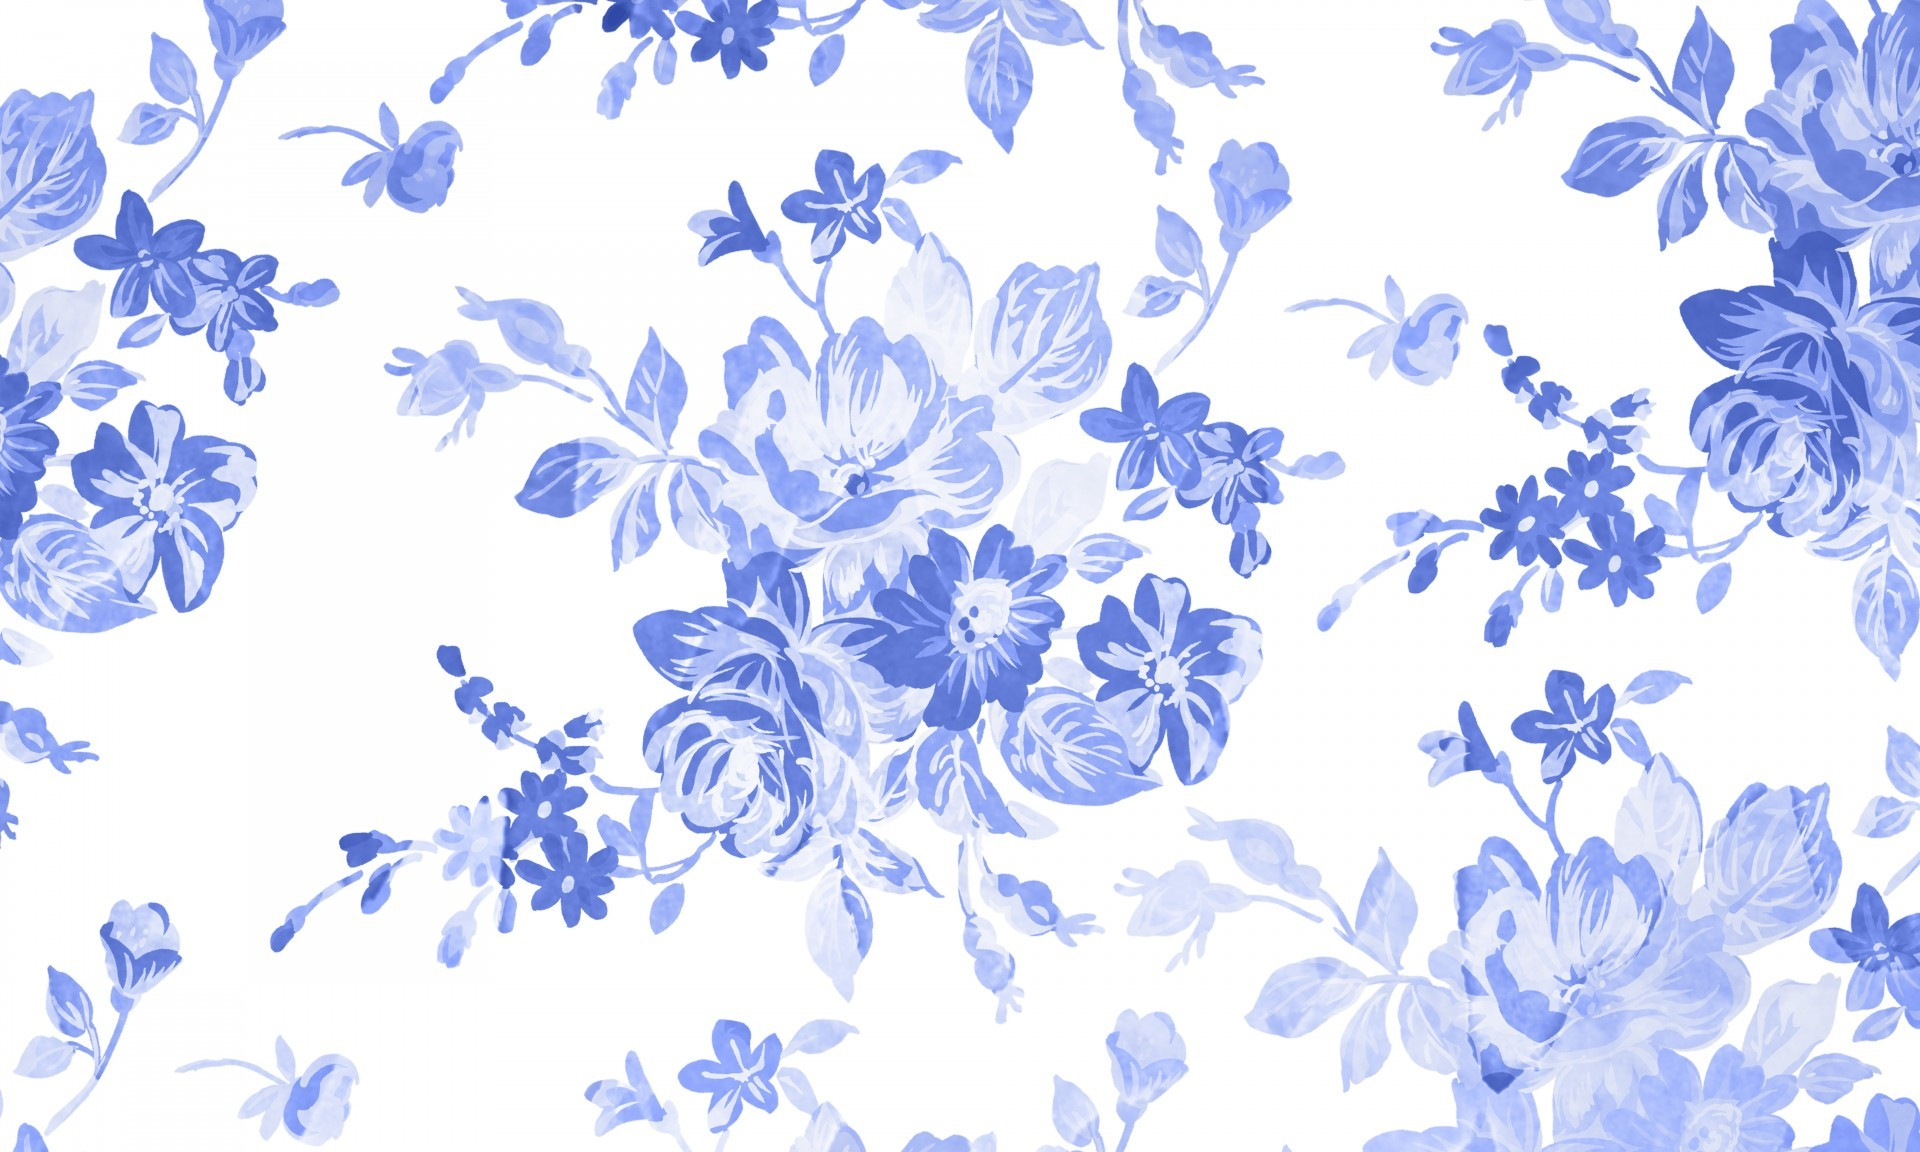 1920x1152 Blue Floral Watercolor Background